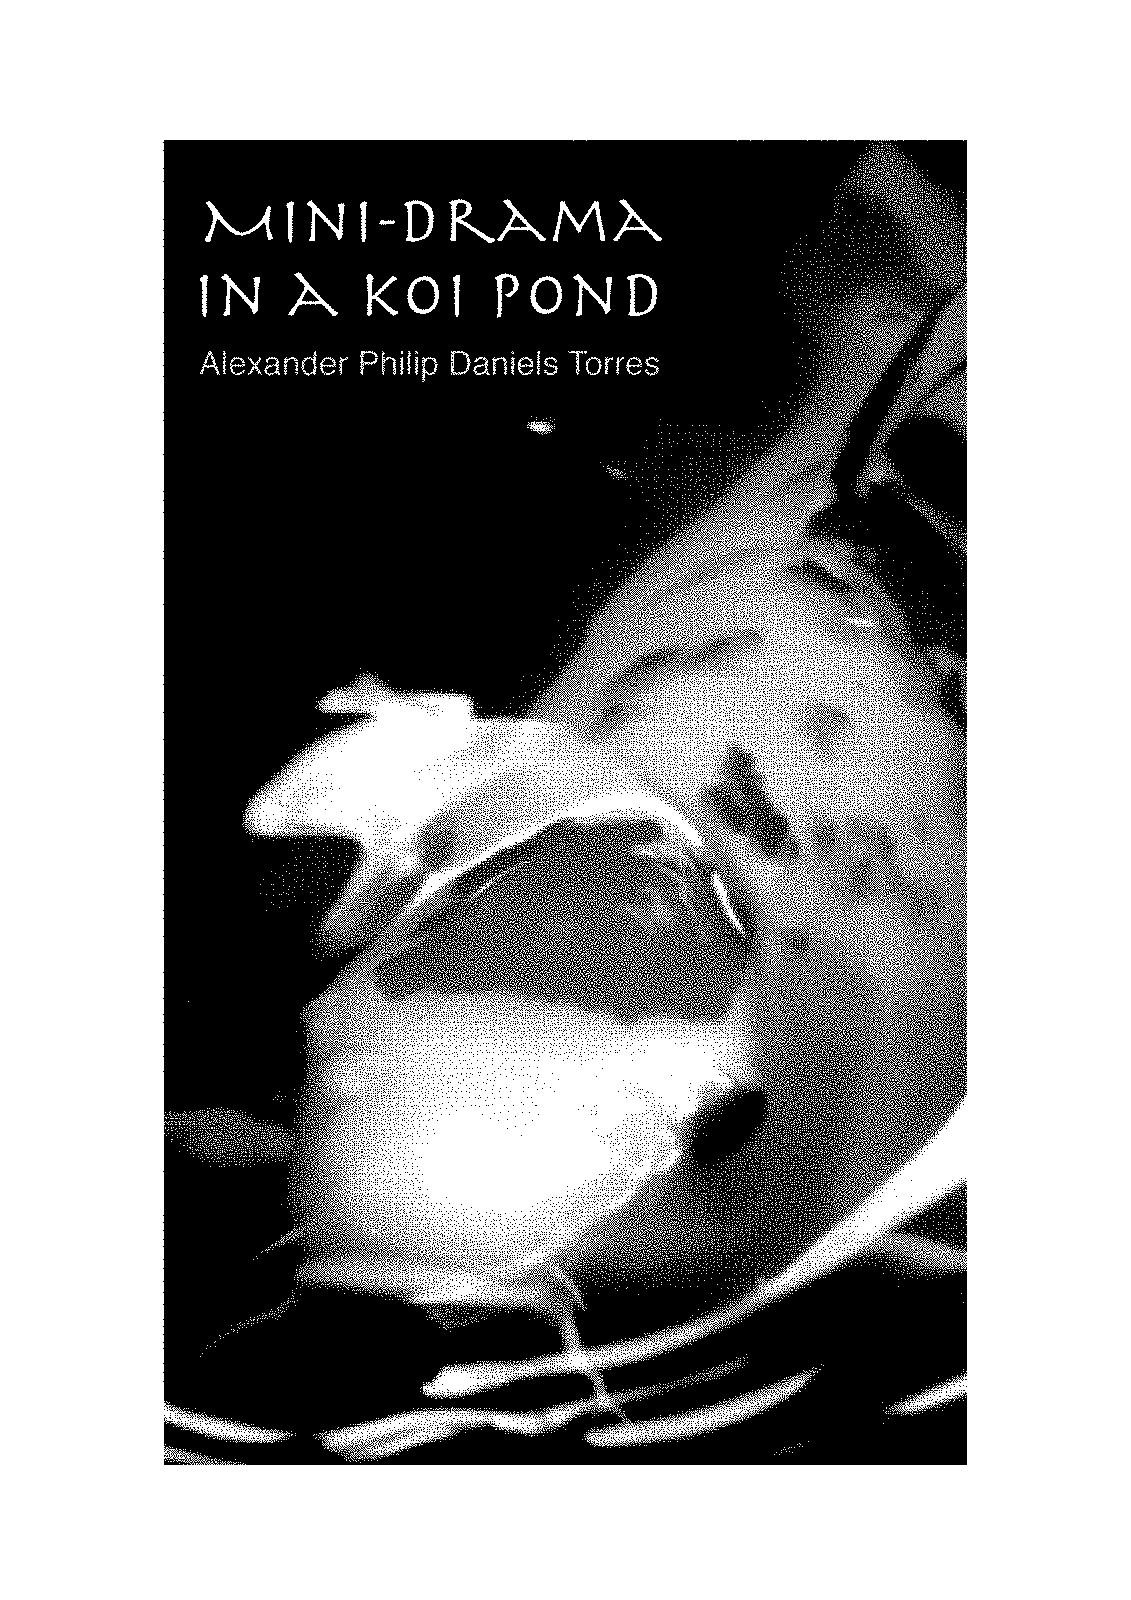 PMLP193903-Mini-drama in a koi pond (Score).pdf